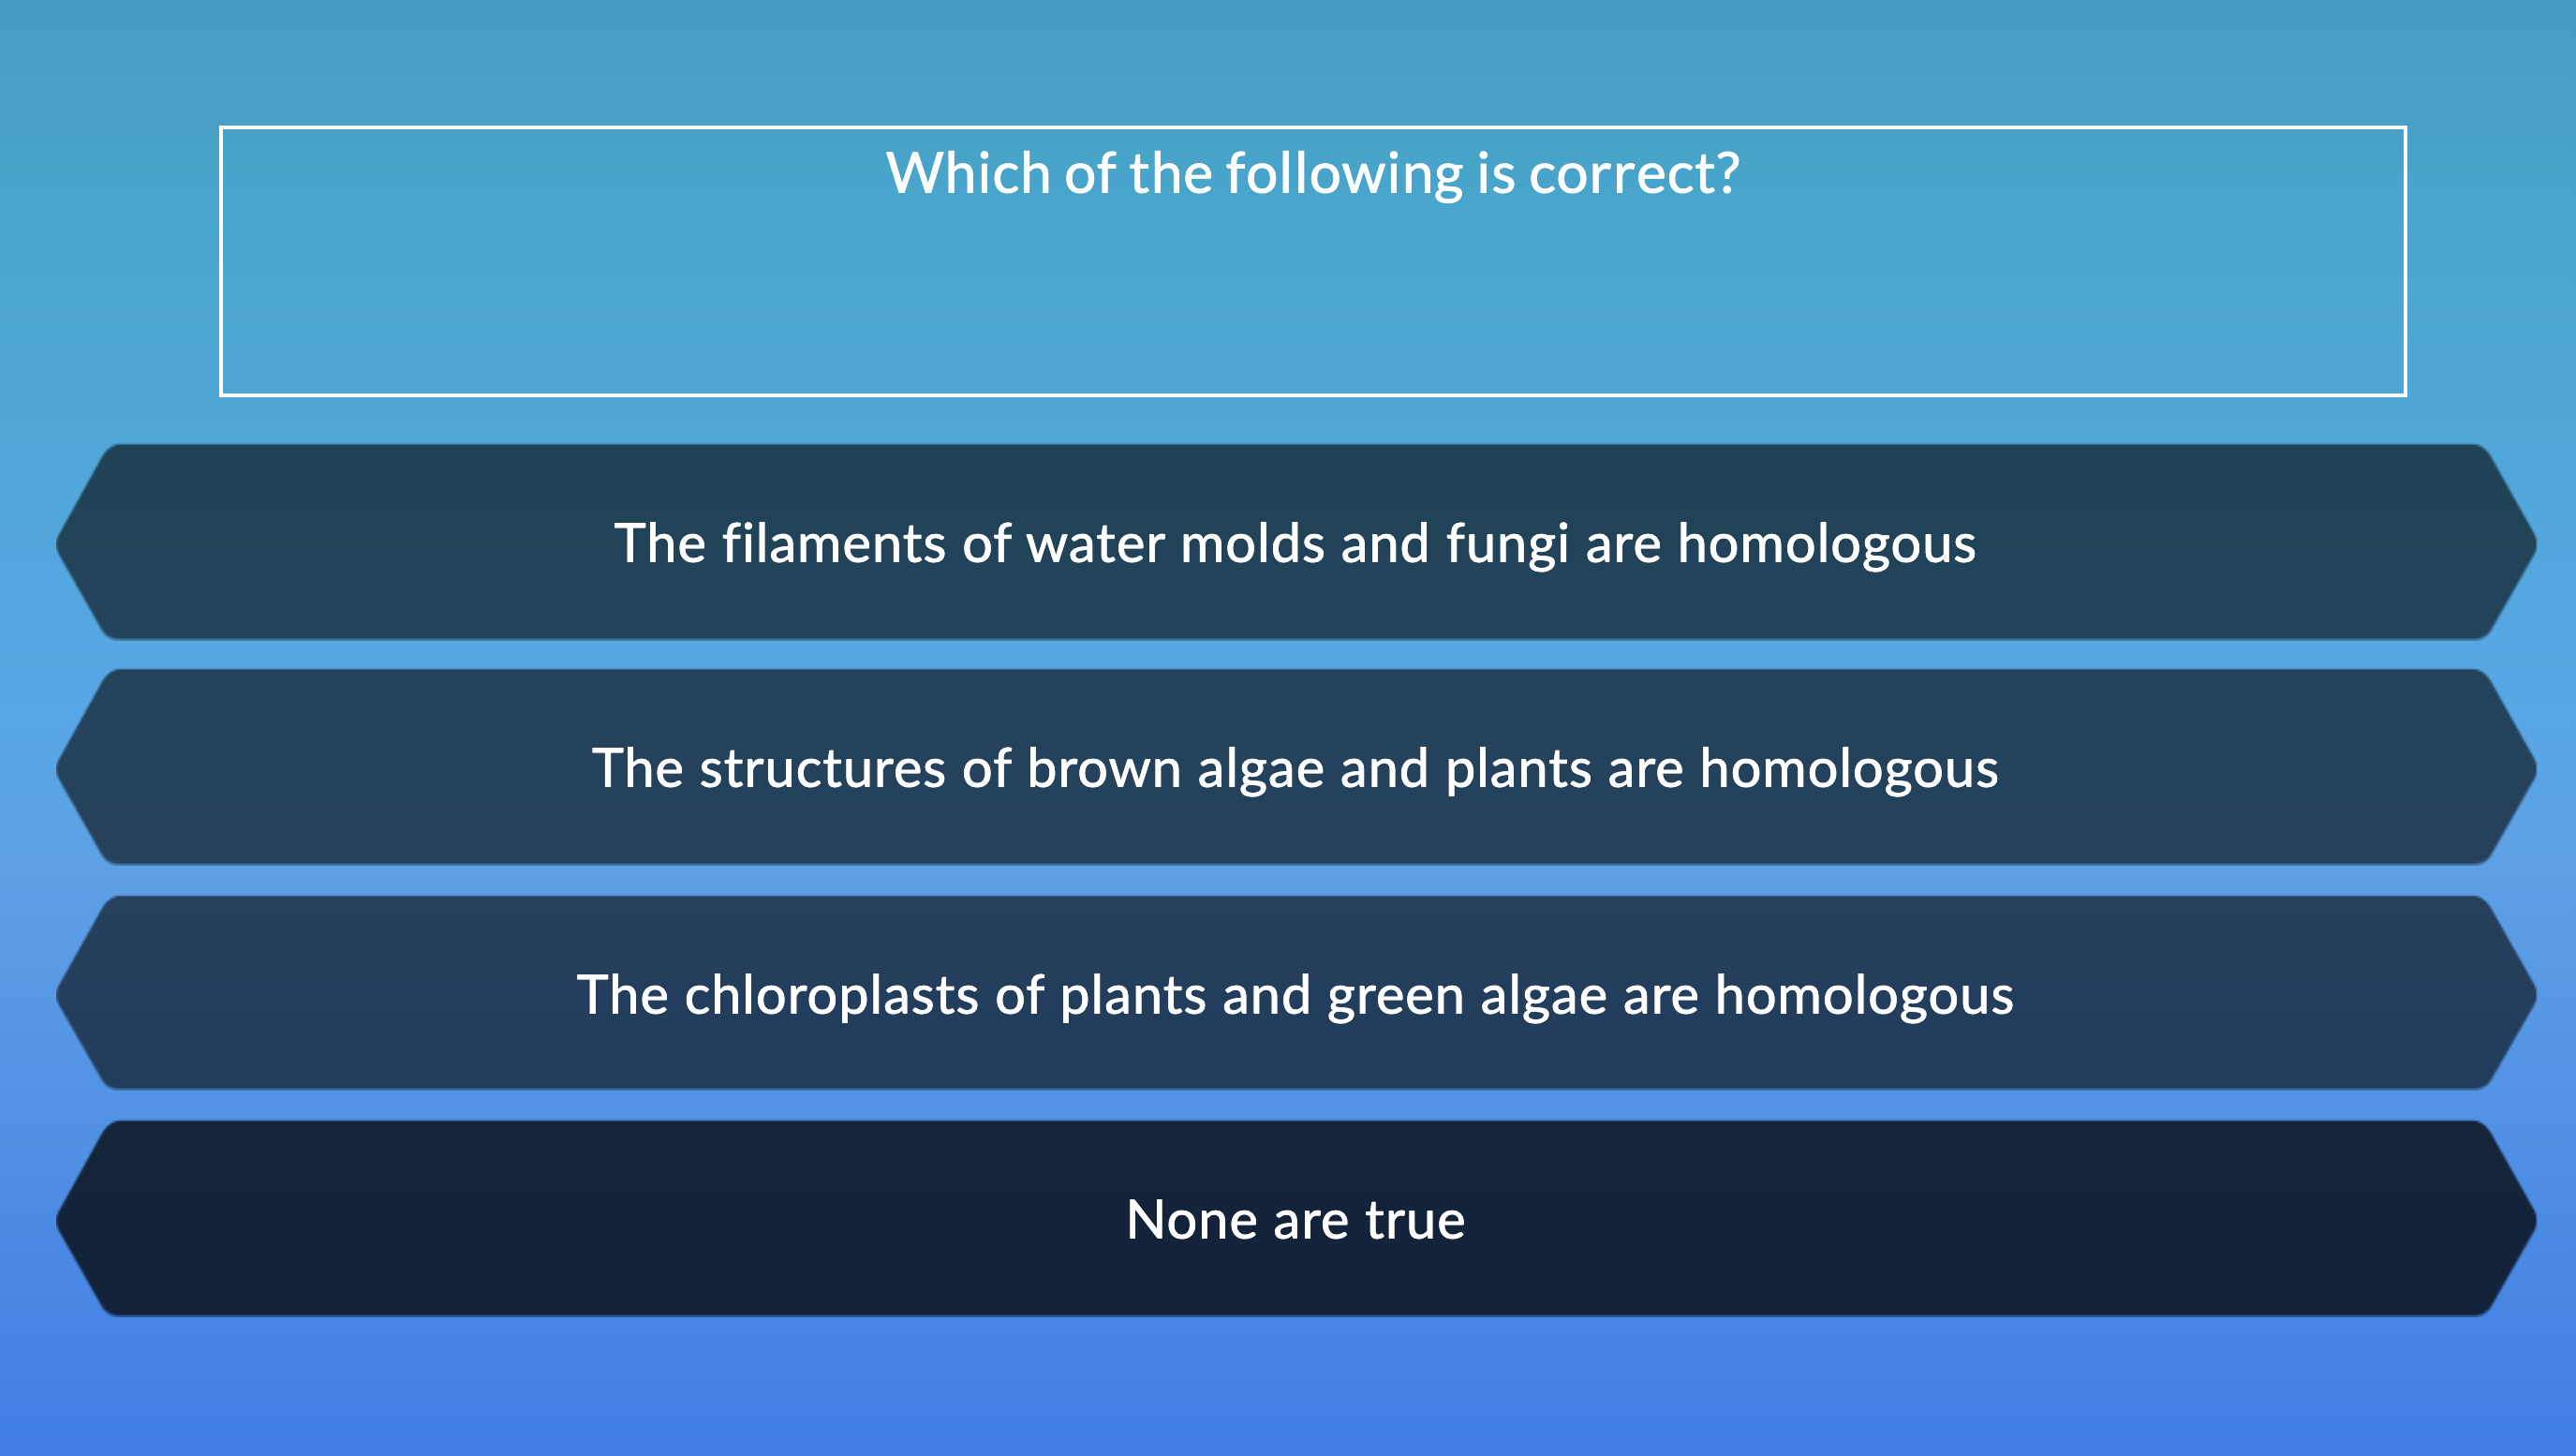 Which of the following is correct? The filaments of water molds and fungi are homologous The structures of brown algae and plants are homologous The chloroplasts of plants and green algae are homologous None are true